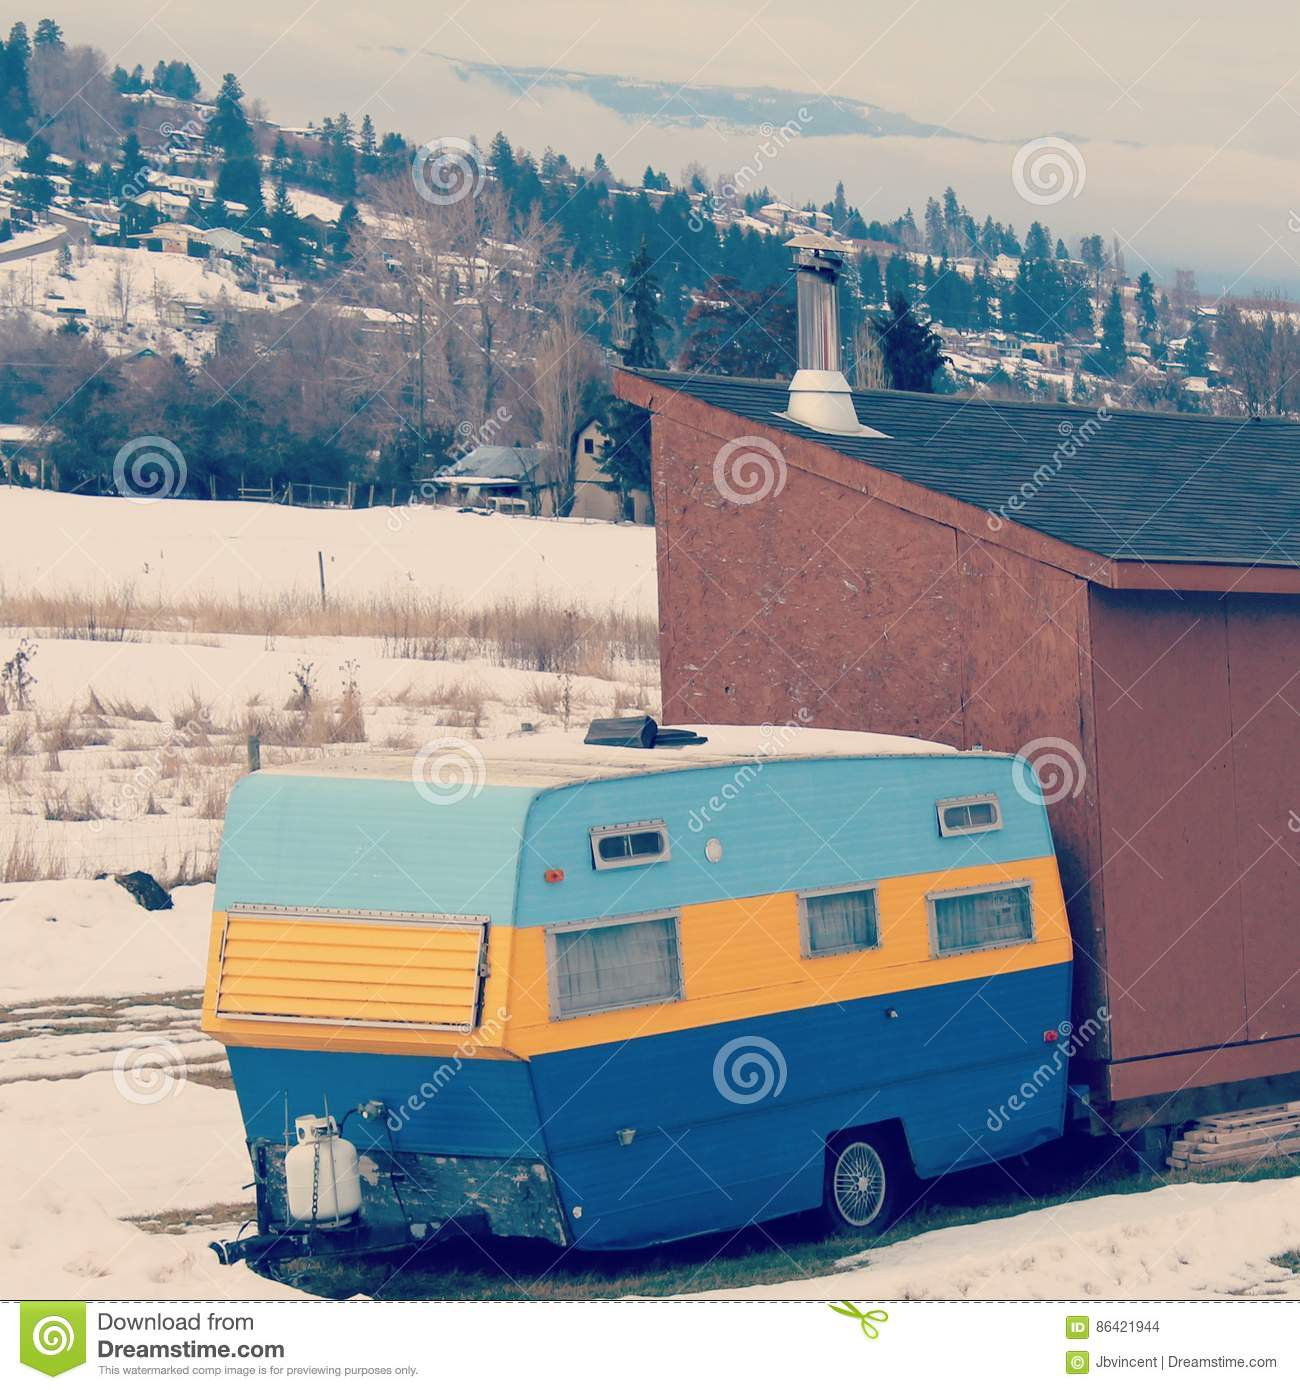 Vintage Stadium Lights: Colorful Vintage Camper Stock Photo. Image Of Snow, Yellow